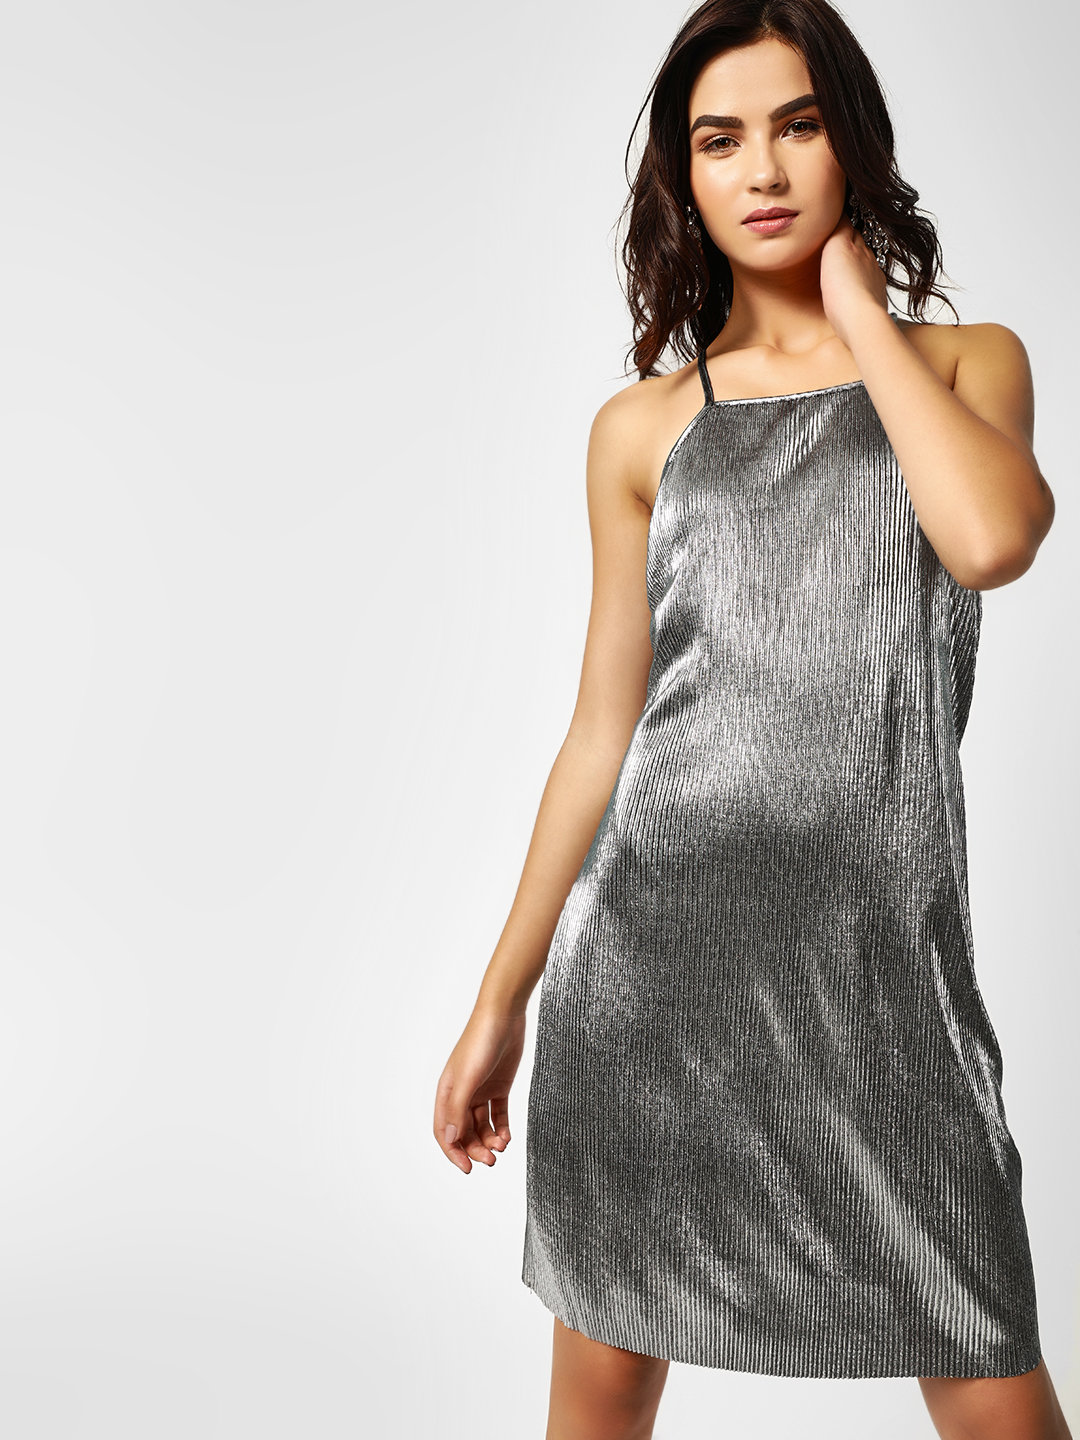 Lola May Silver Plisse Metallic Shift Dress 1